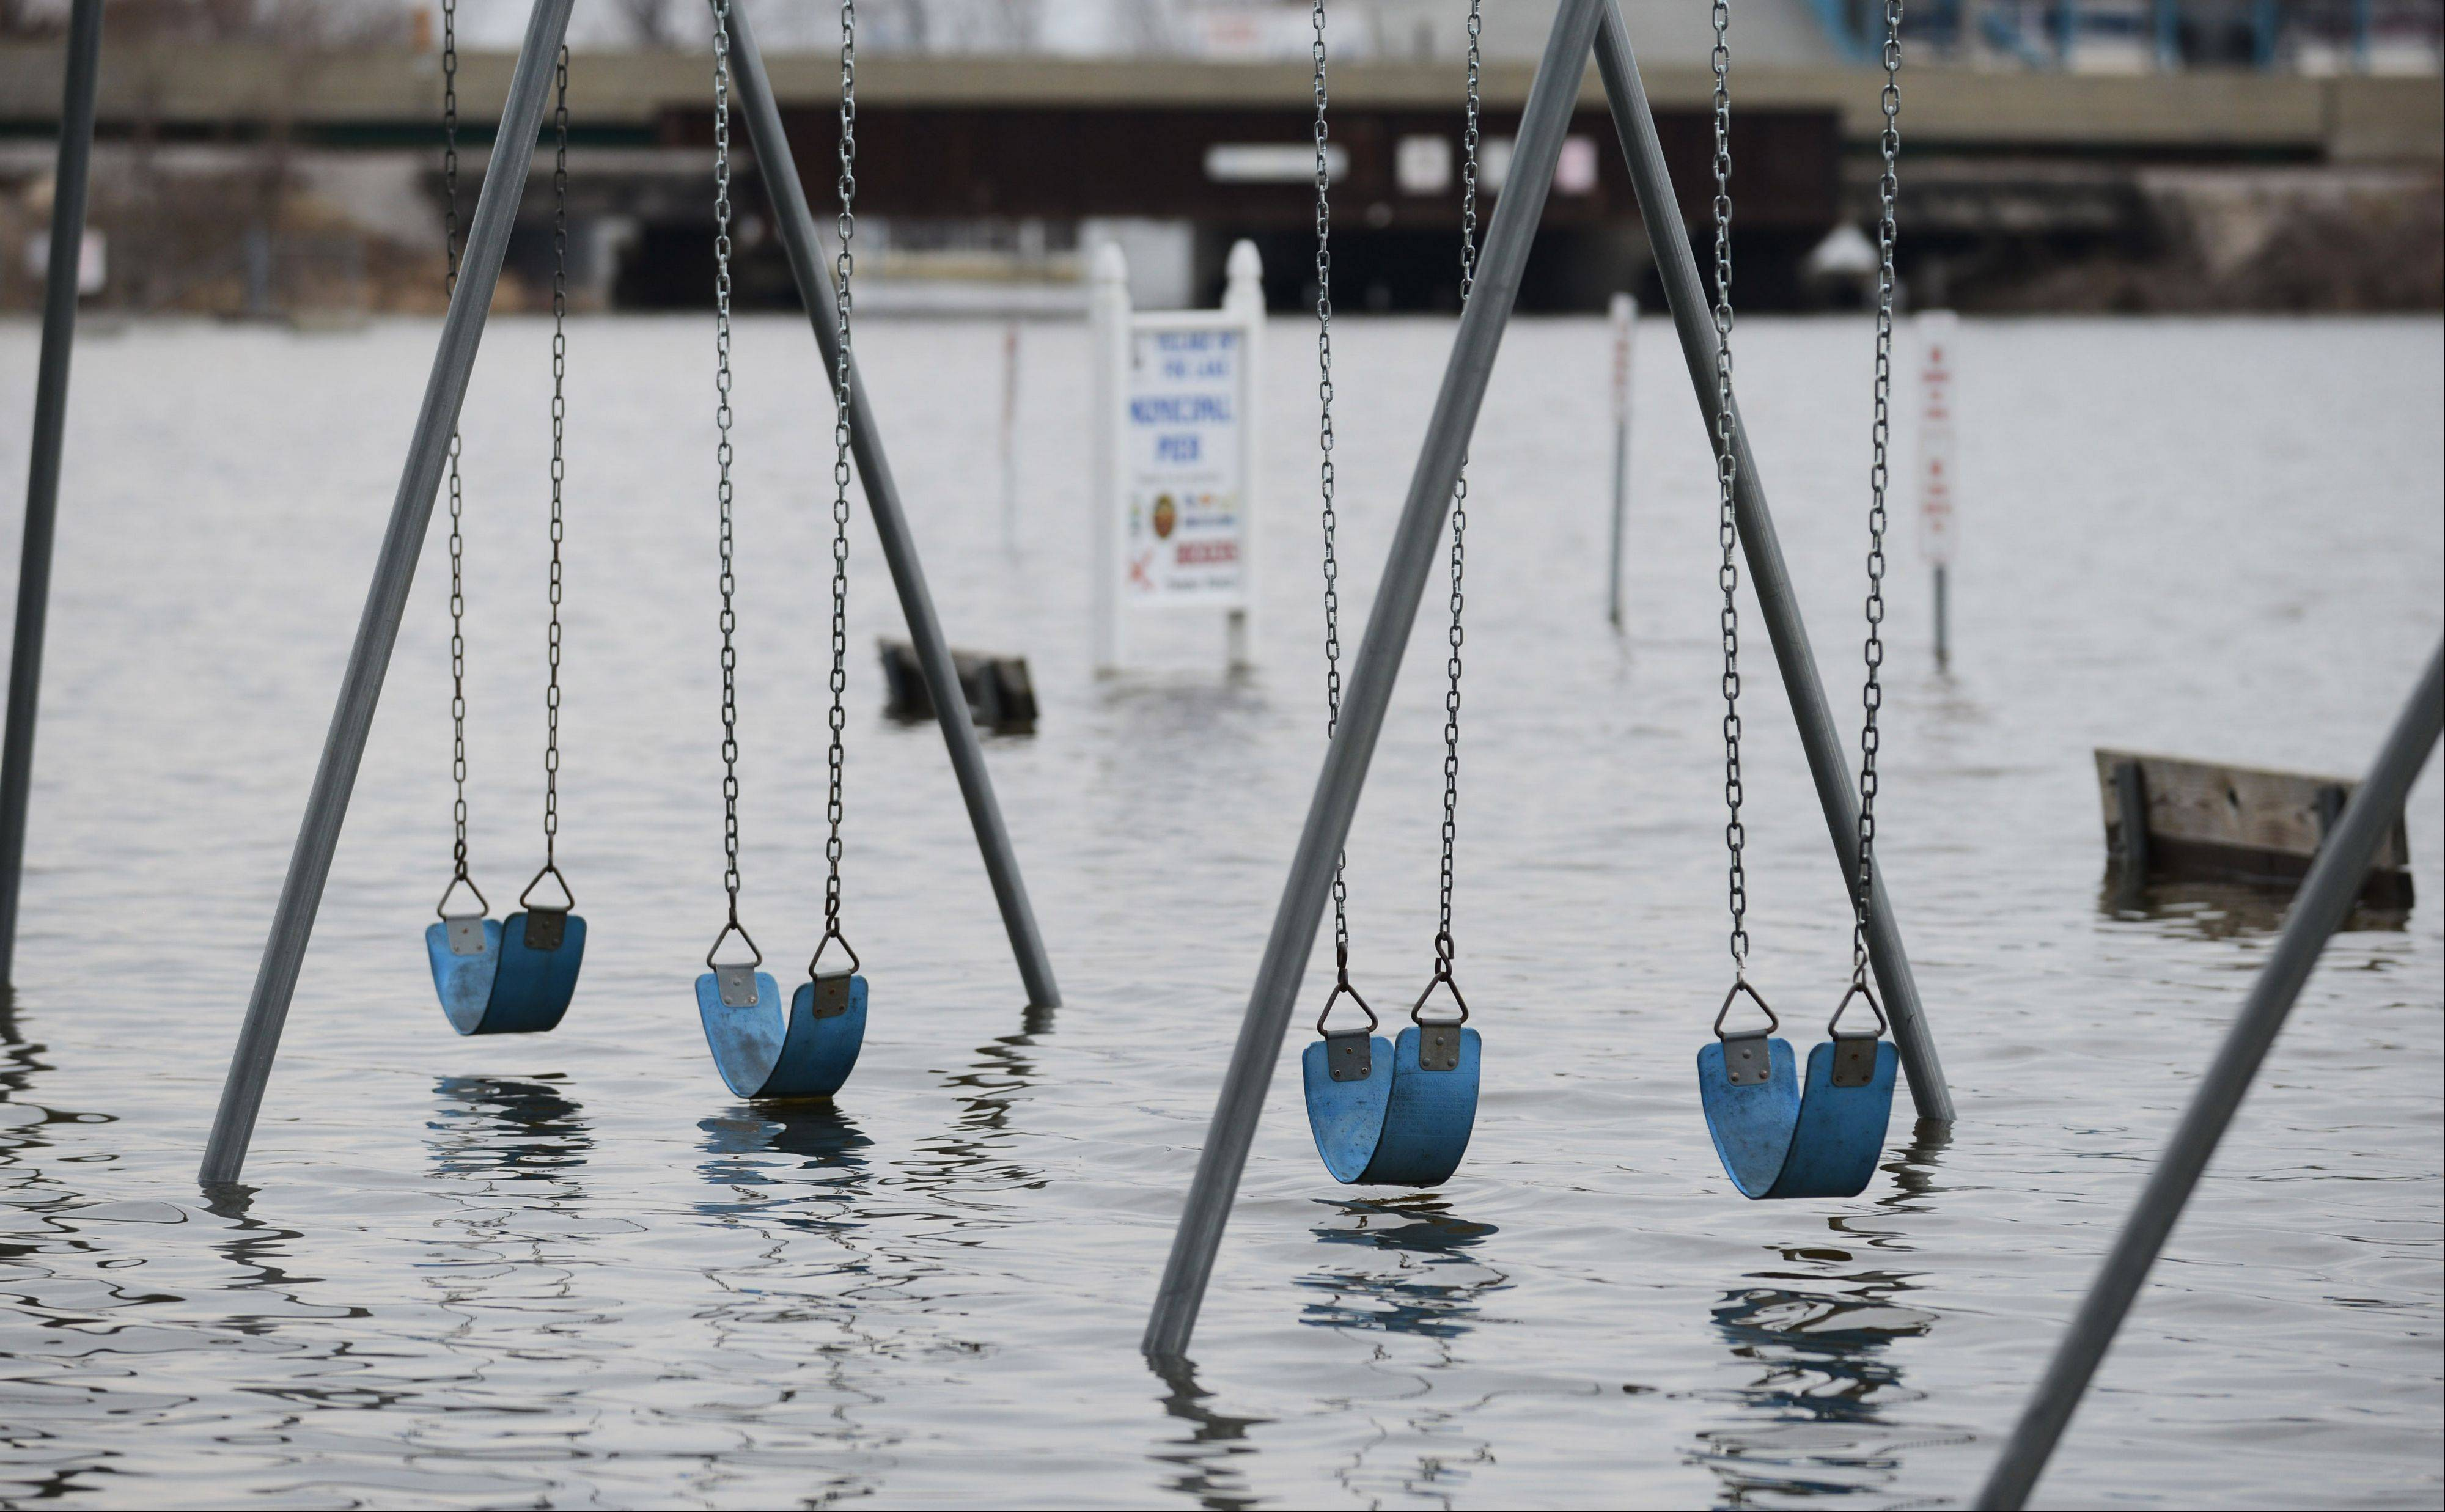 Paul Valade/pvalade@dailyherald.com Swing sets are under water at Lakefront Park in Fox Lake Tuesday.